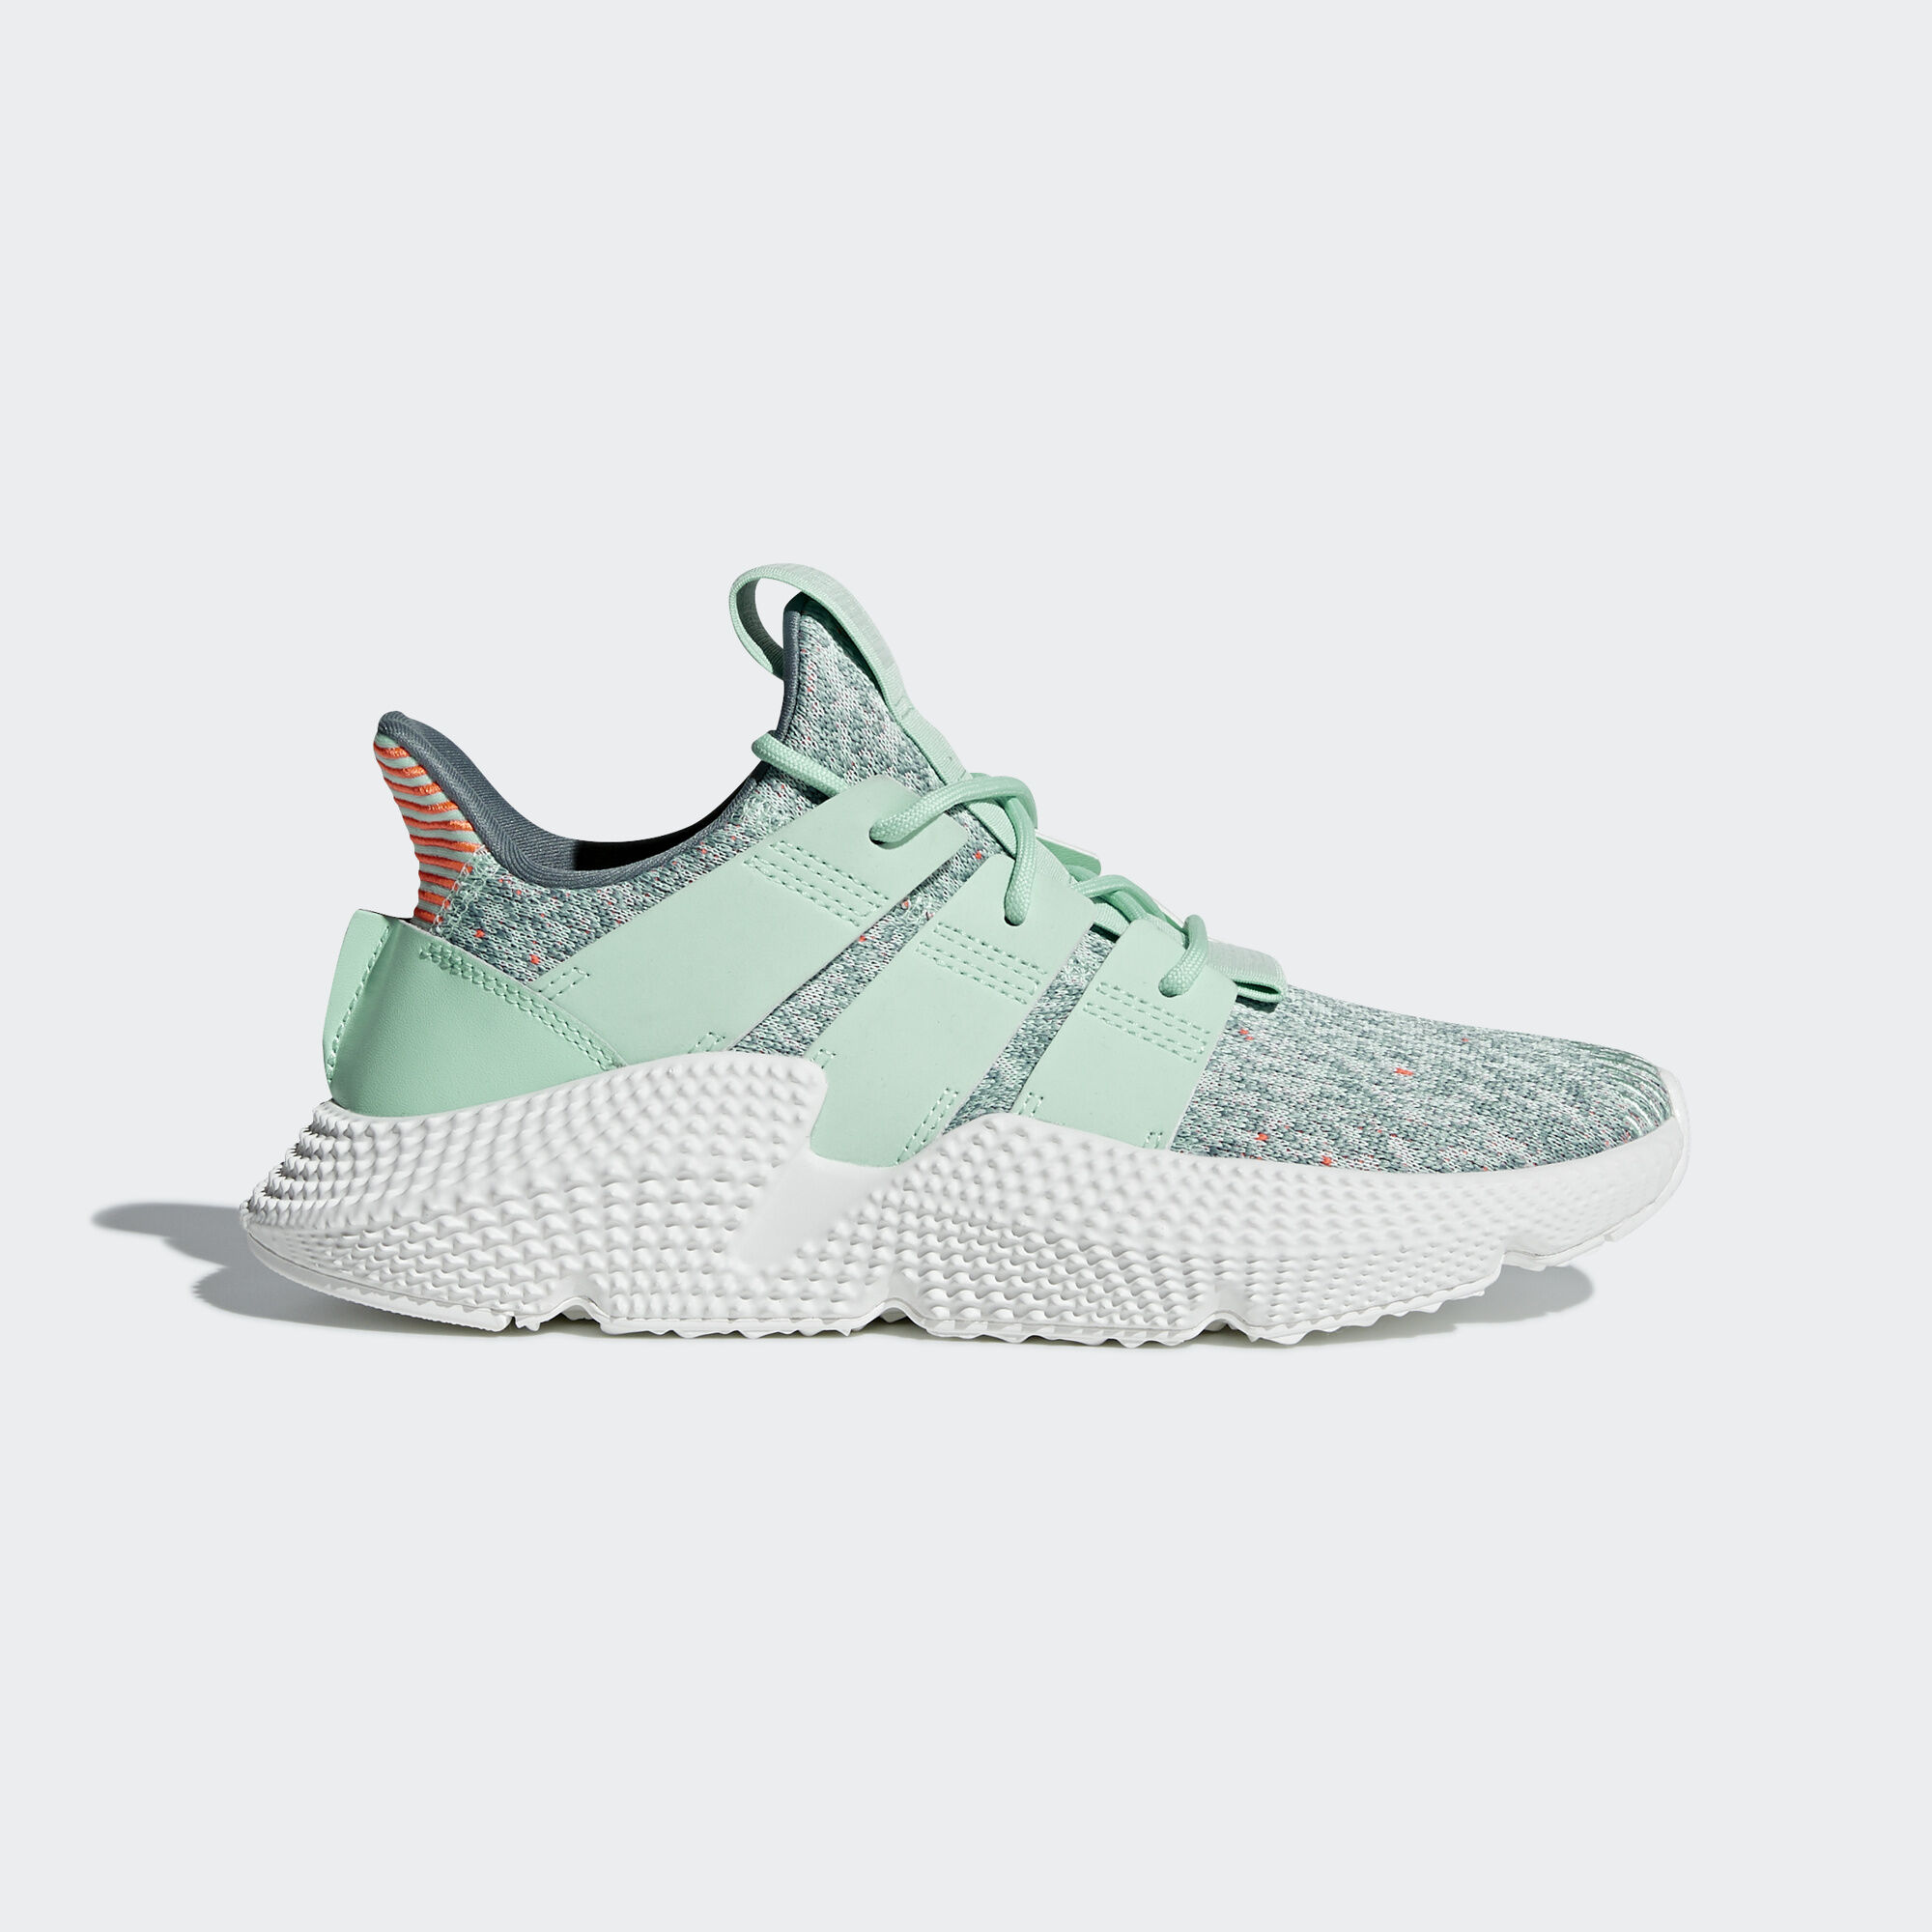 East East Prophere Shoes Adidas Shoes Adidas TurquoiseAsiamiddle TurquoiseAsiamiddle Prophere rdxoWBeC